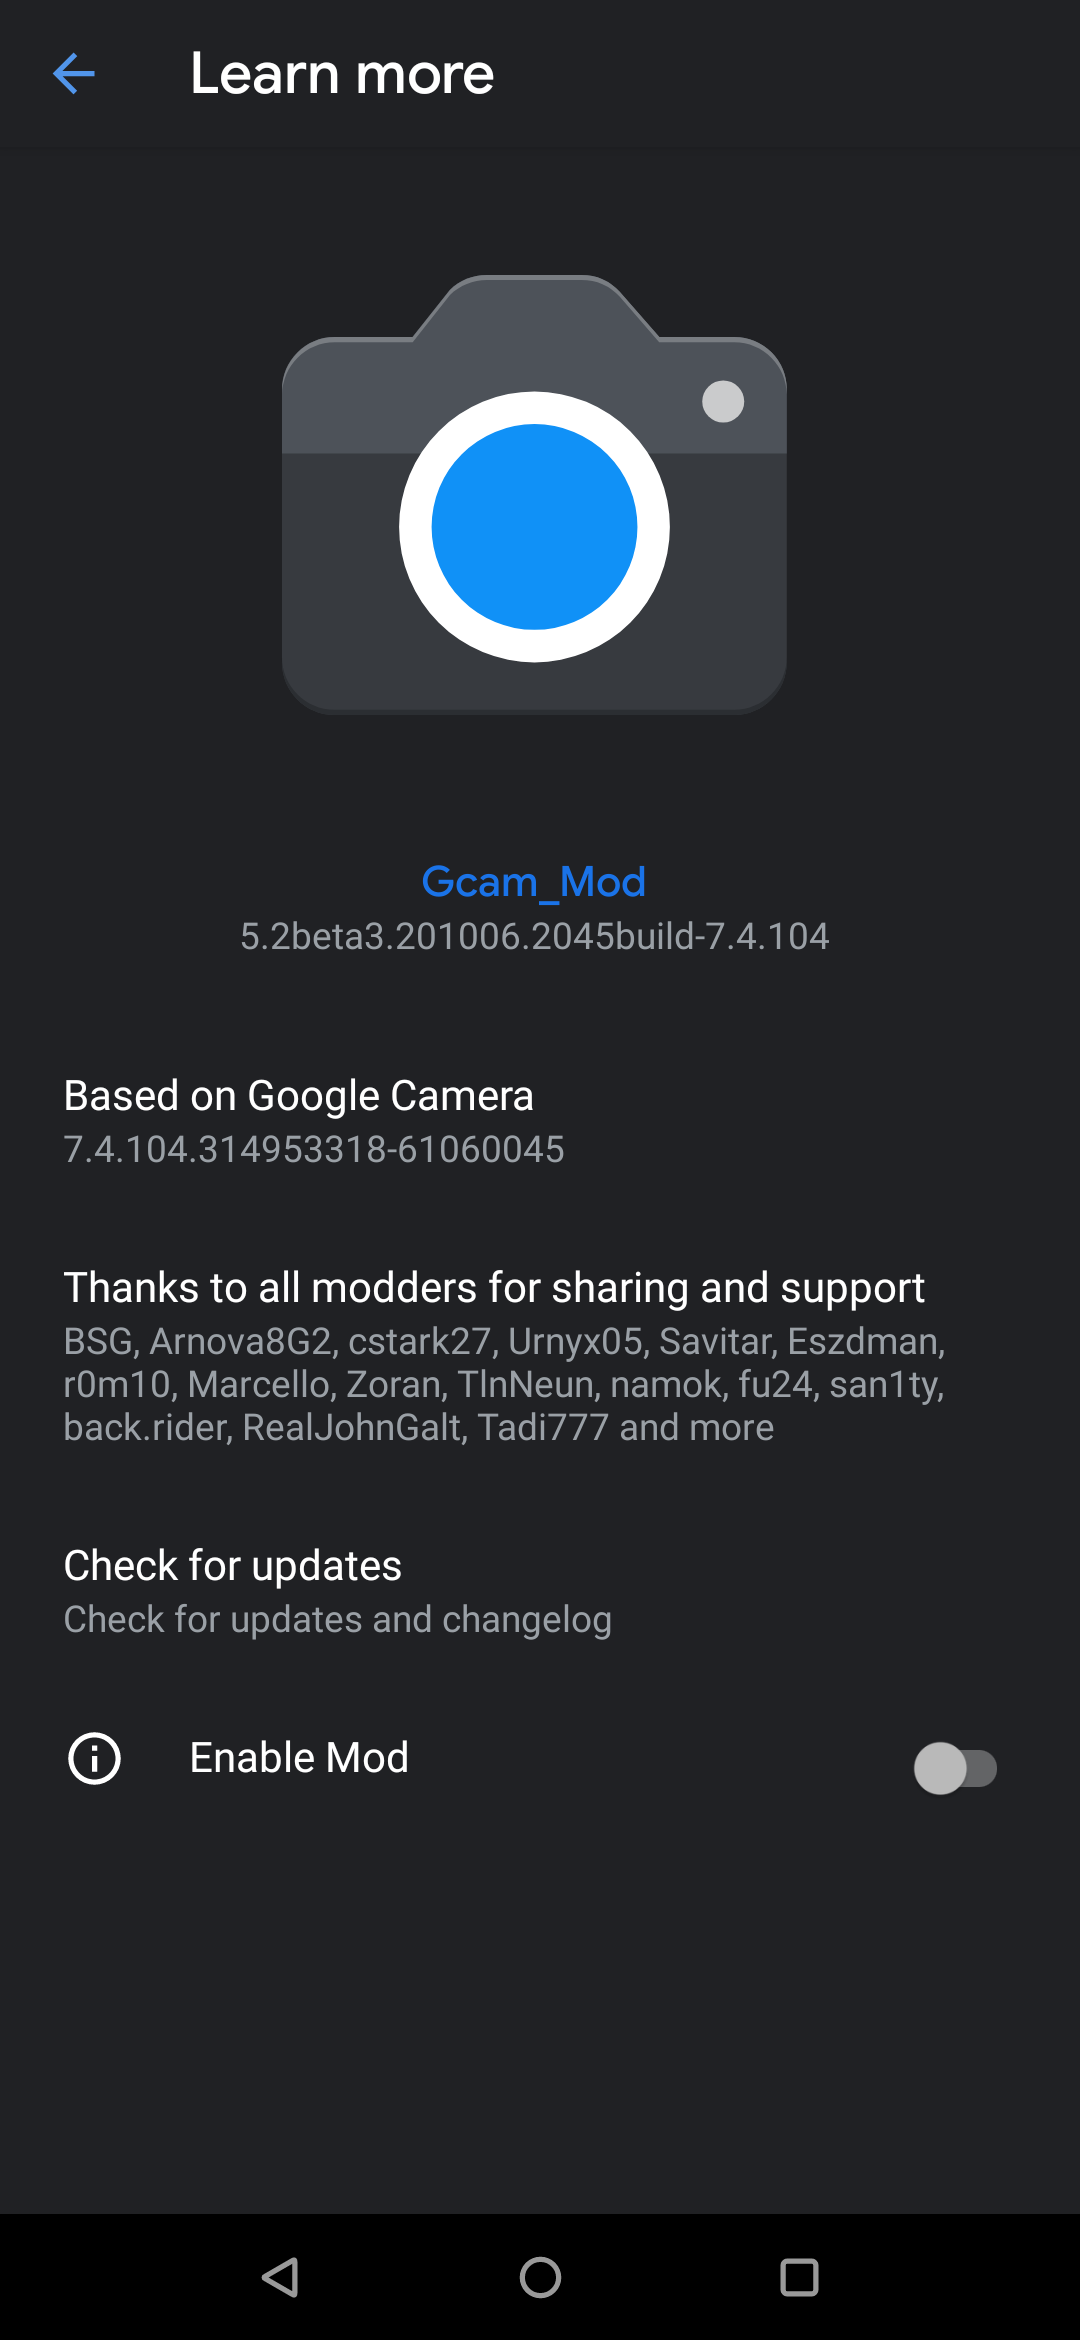 GCam-5.2beta3.201006.2045build-7.4.104